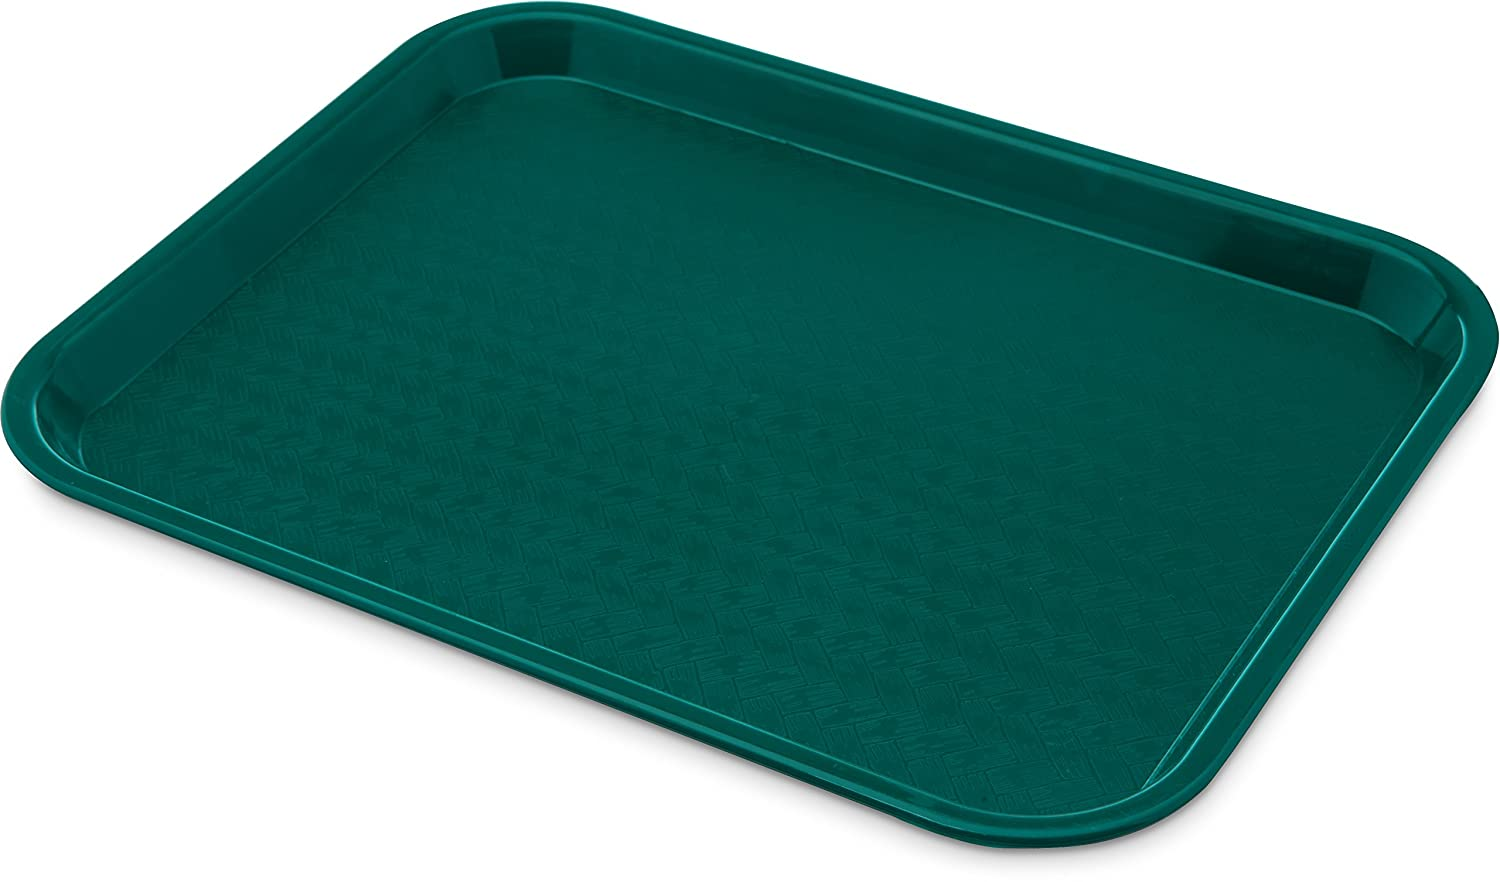 Carlisle CT101415 Café Standard Cafeteria/Fast Food Tray, 10 x 14, Teal 10 x 14 food service warehouse